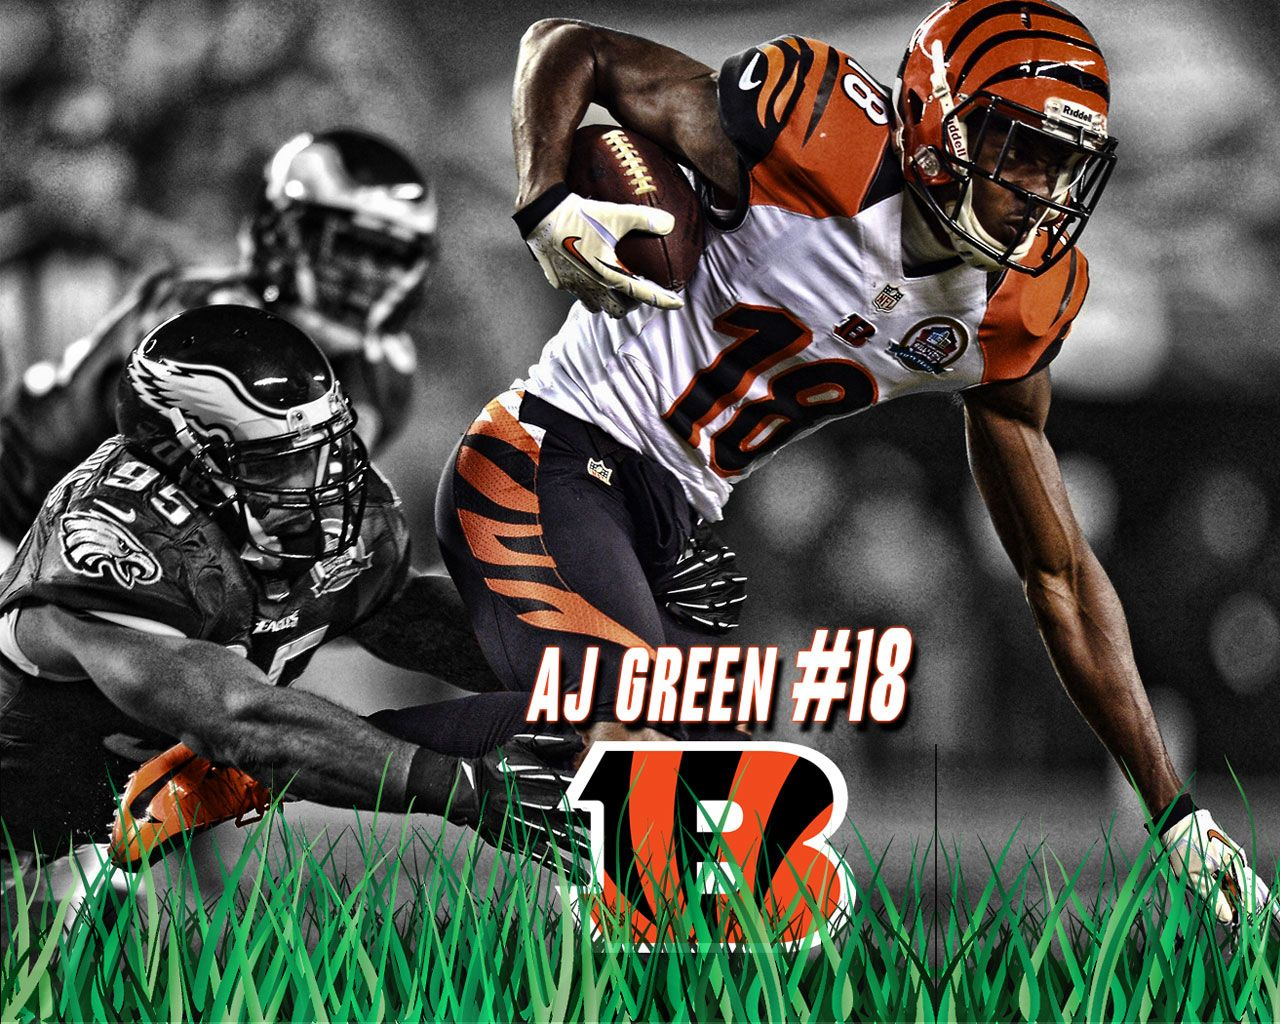 Pin By Arturo Ramos On Bengals Fotos In 2020 Cincinnati Bengals Football Cincinnati Bengals Nfl Players